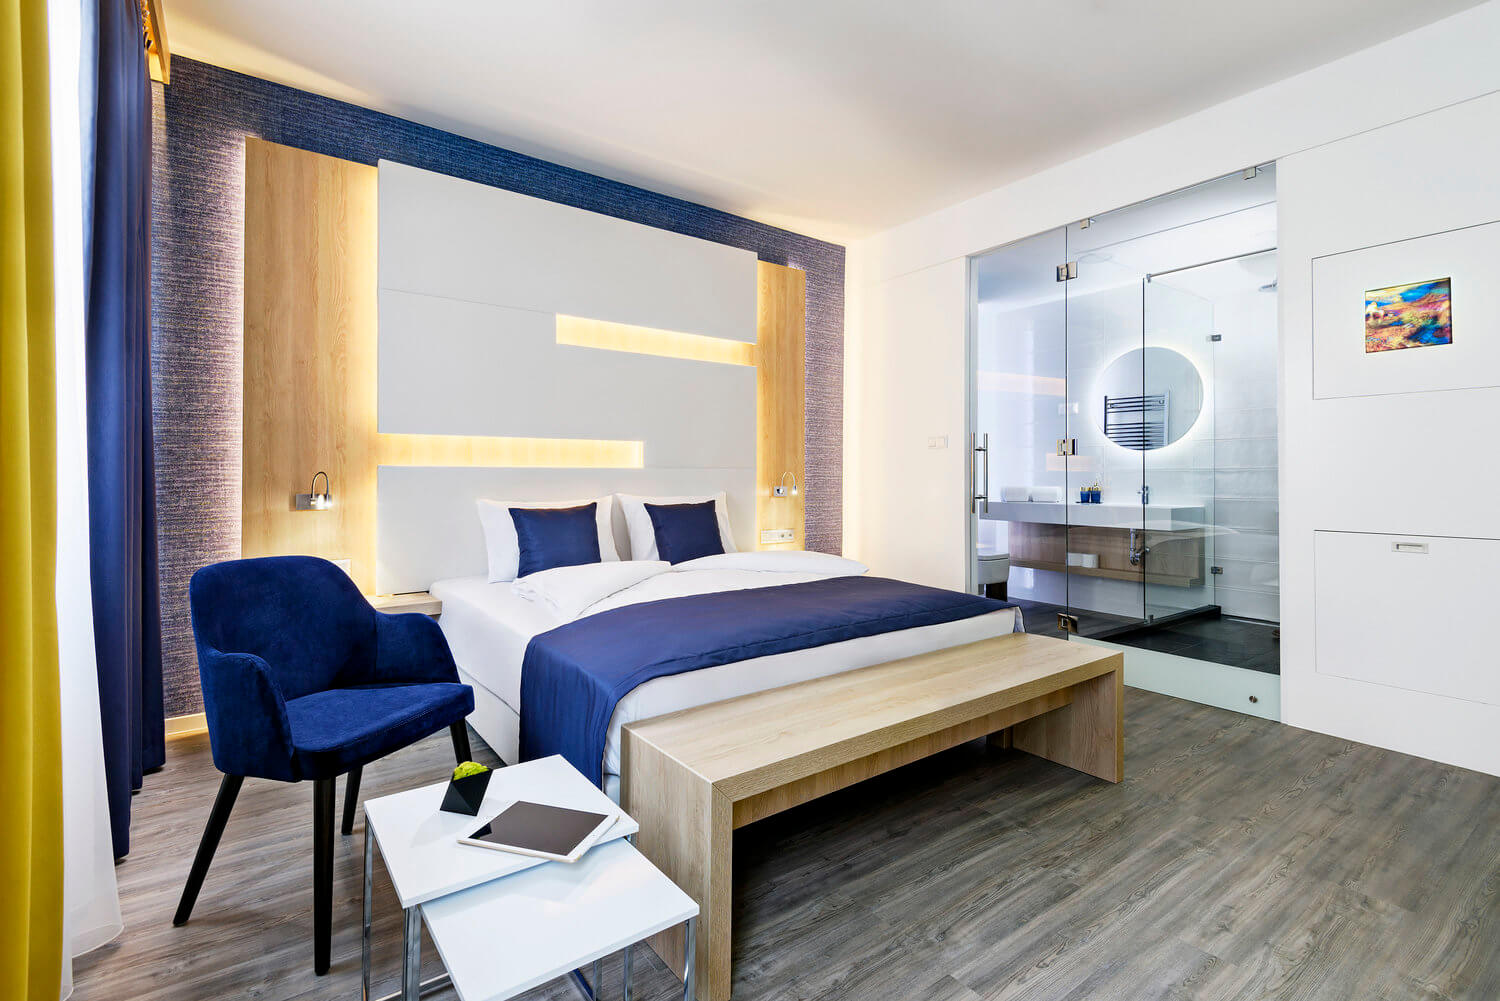 KViHotel deploys ASSA ABLOY Hospitality mobile access solution for keyless guestroom entry